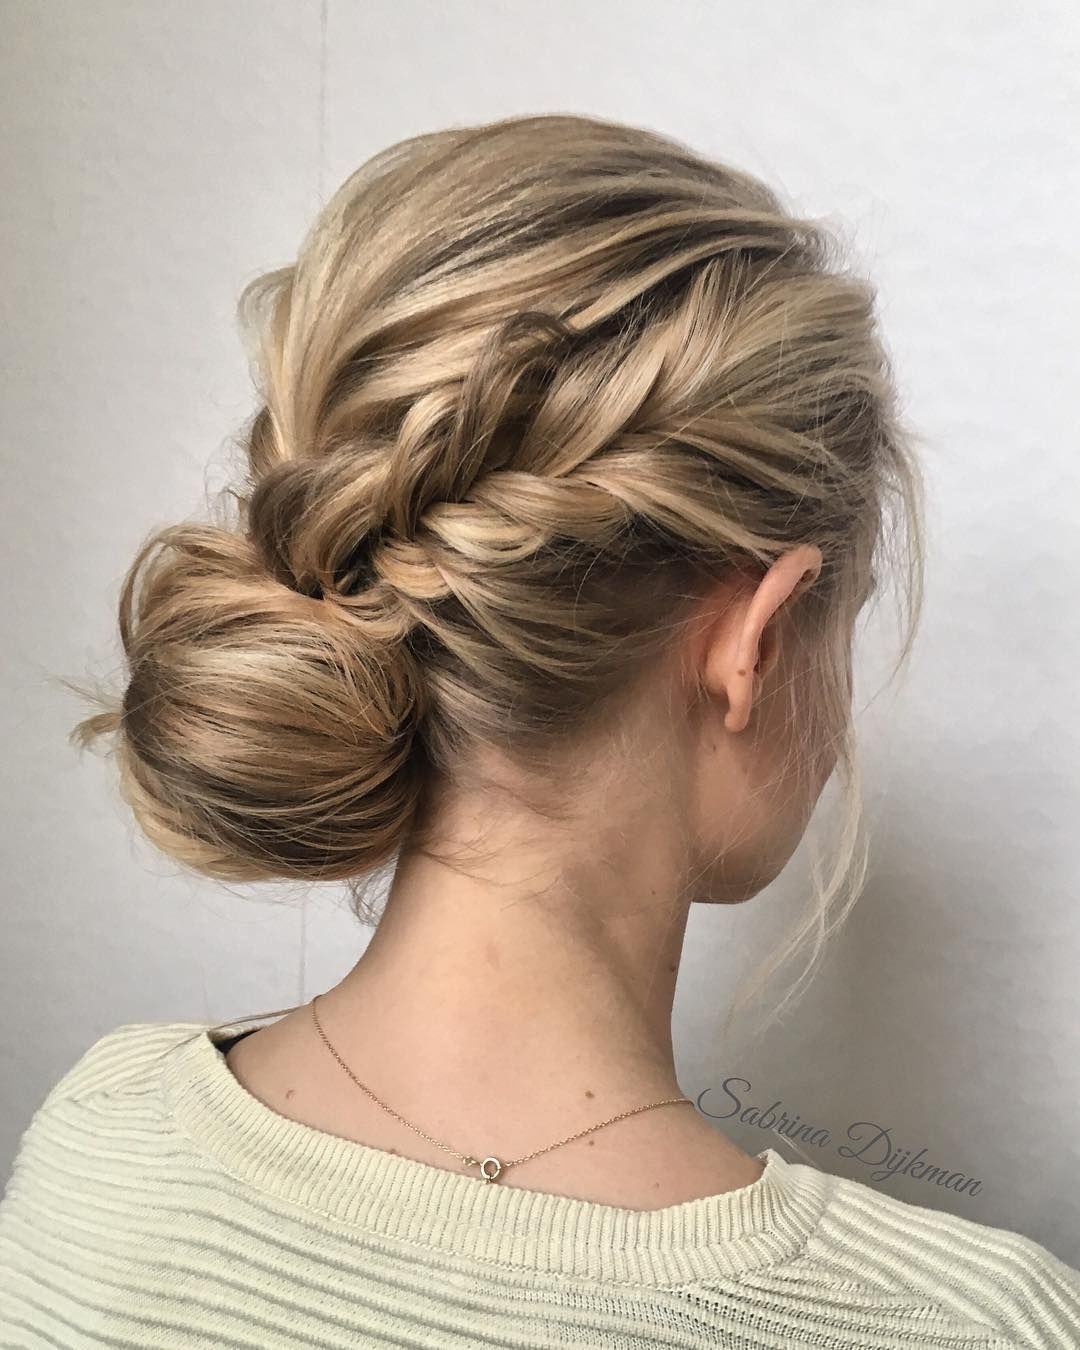 Updo Hairstyles For Wedding Guests: Side Updo For Any Bride Looking For A Unique Style